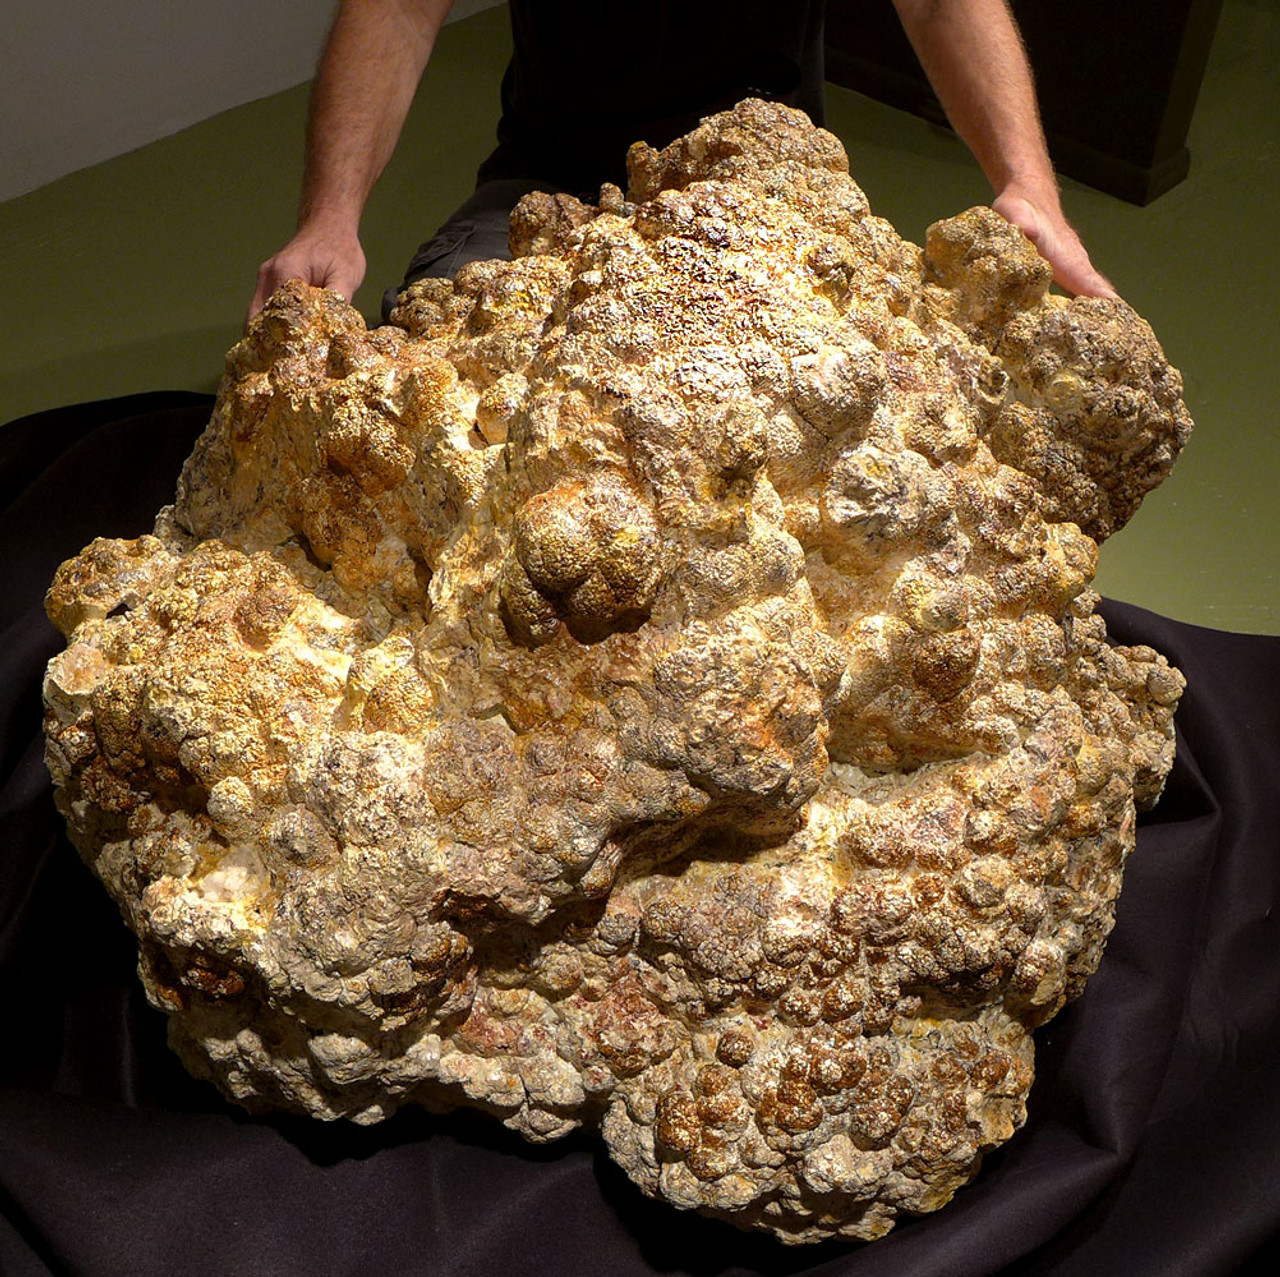 MUSEUM-CLASS GIANT LACUSTRINE FOSSIL STROMATOLITE SUPER-COLONY FROM THE LOWER PERMIAN OF GERMANY *STXL003